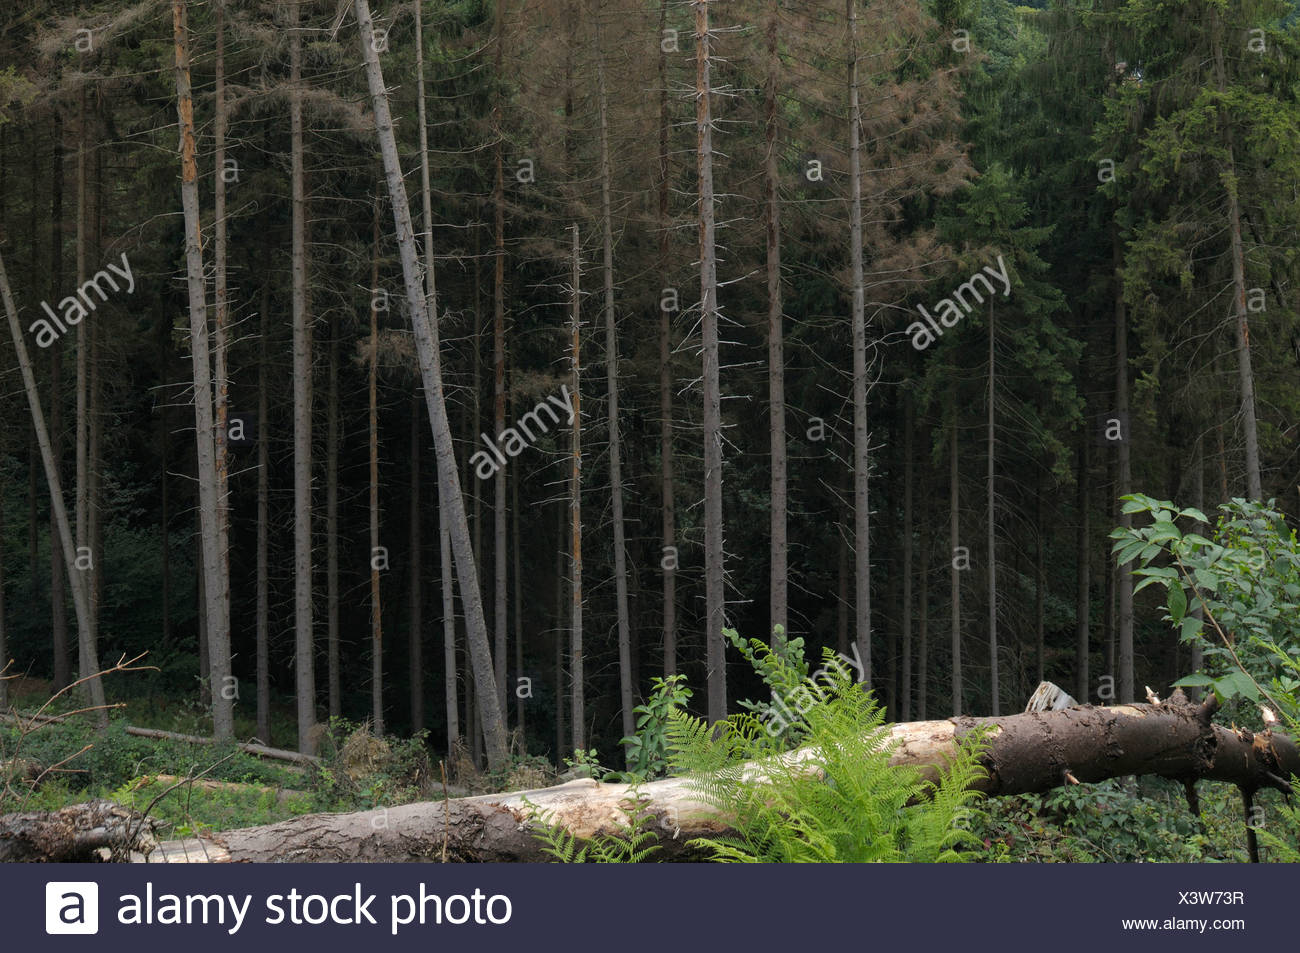 Monoculture forest, cutting, windthrow, coniferous forest - Stock Image